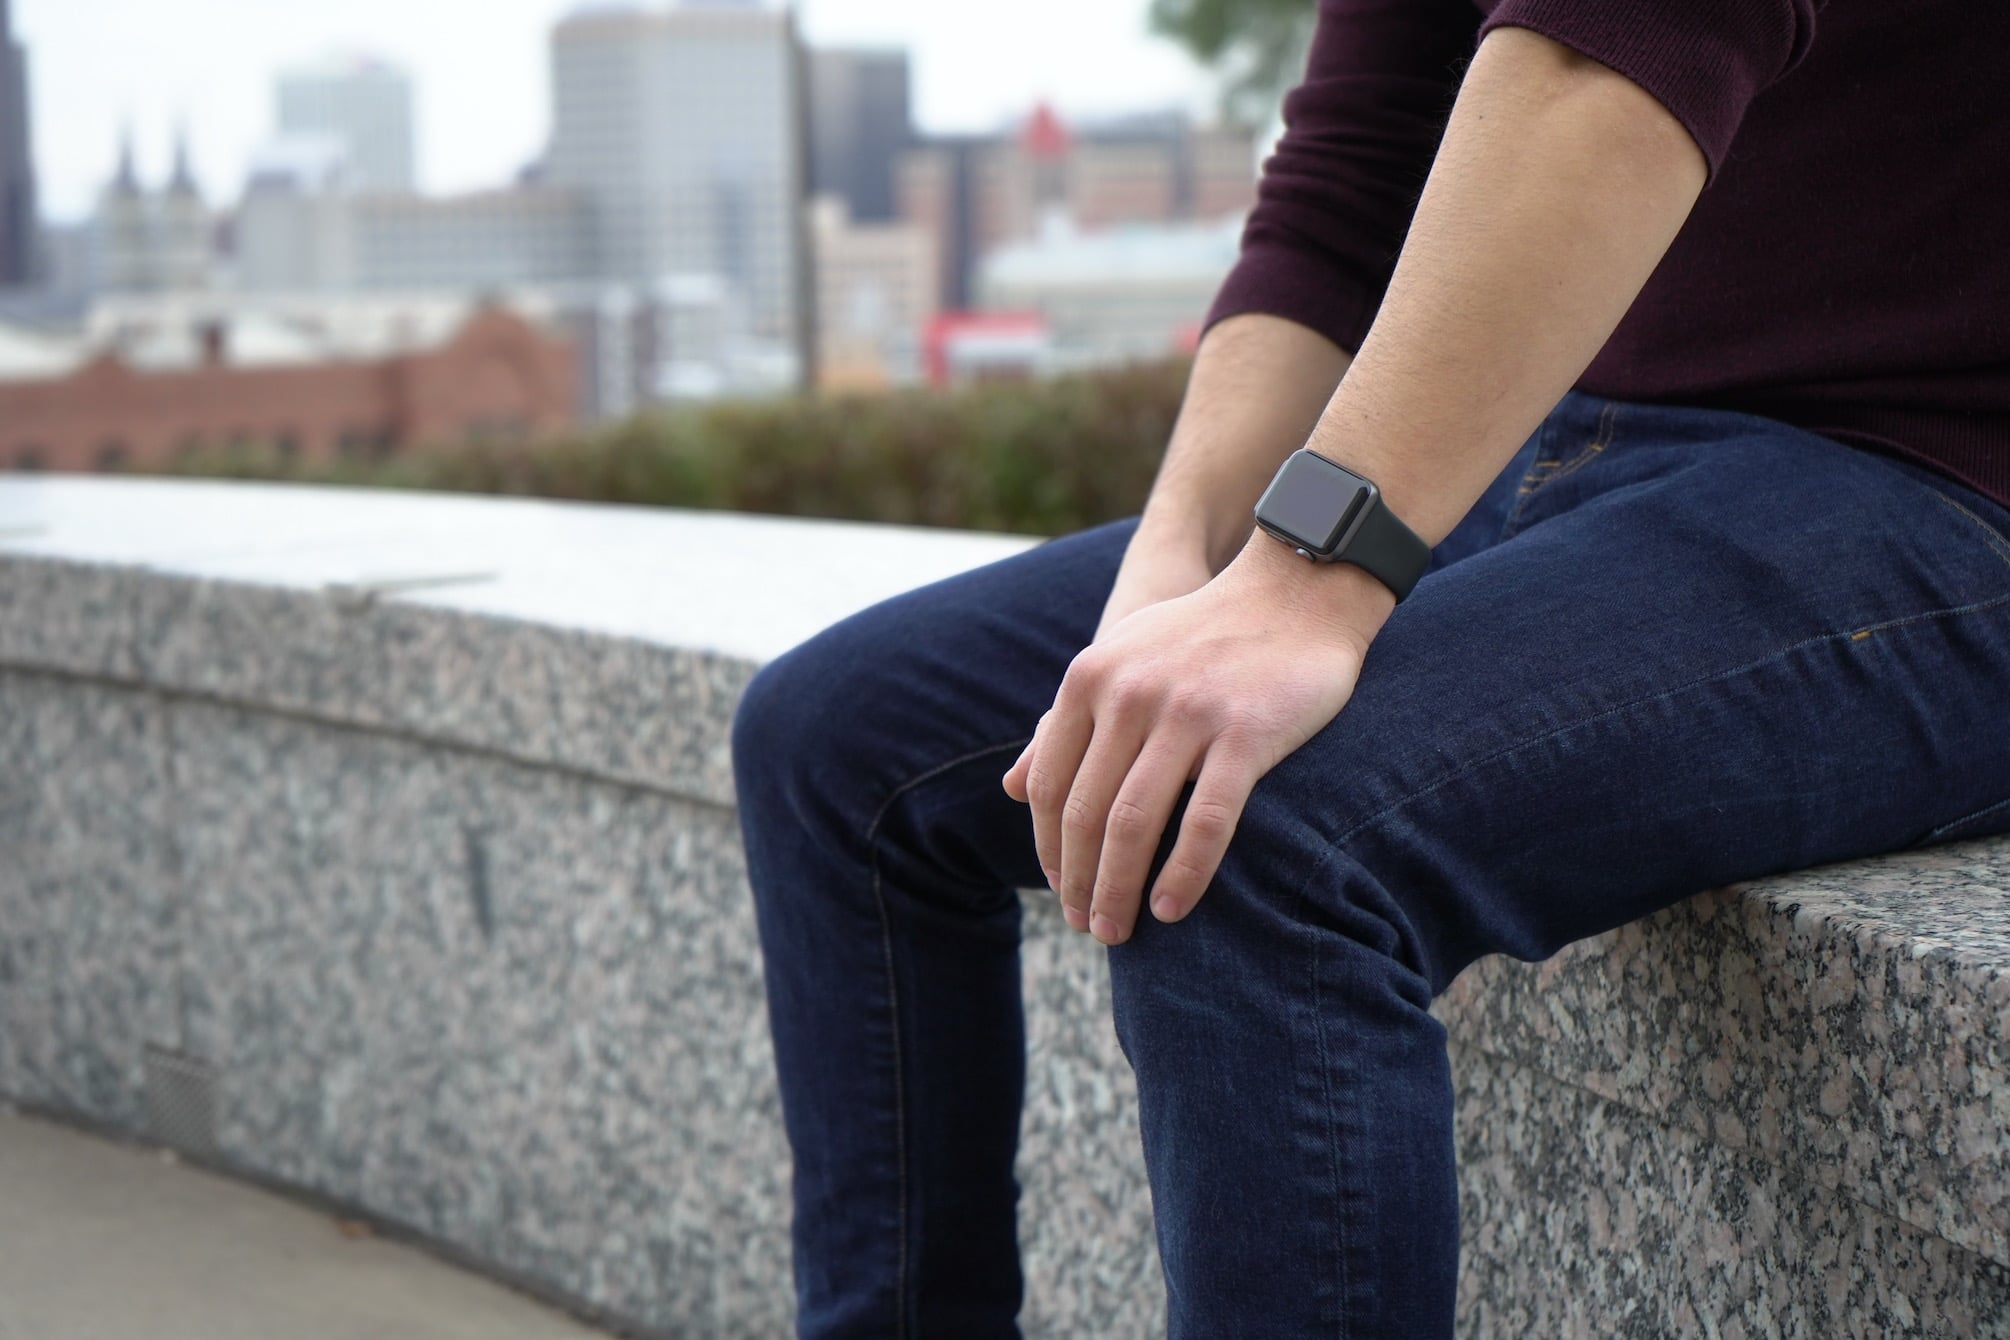 Small smart watches